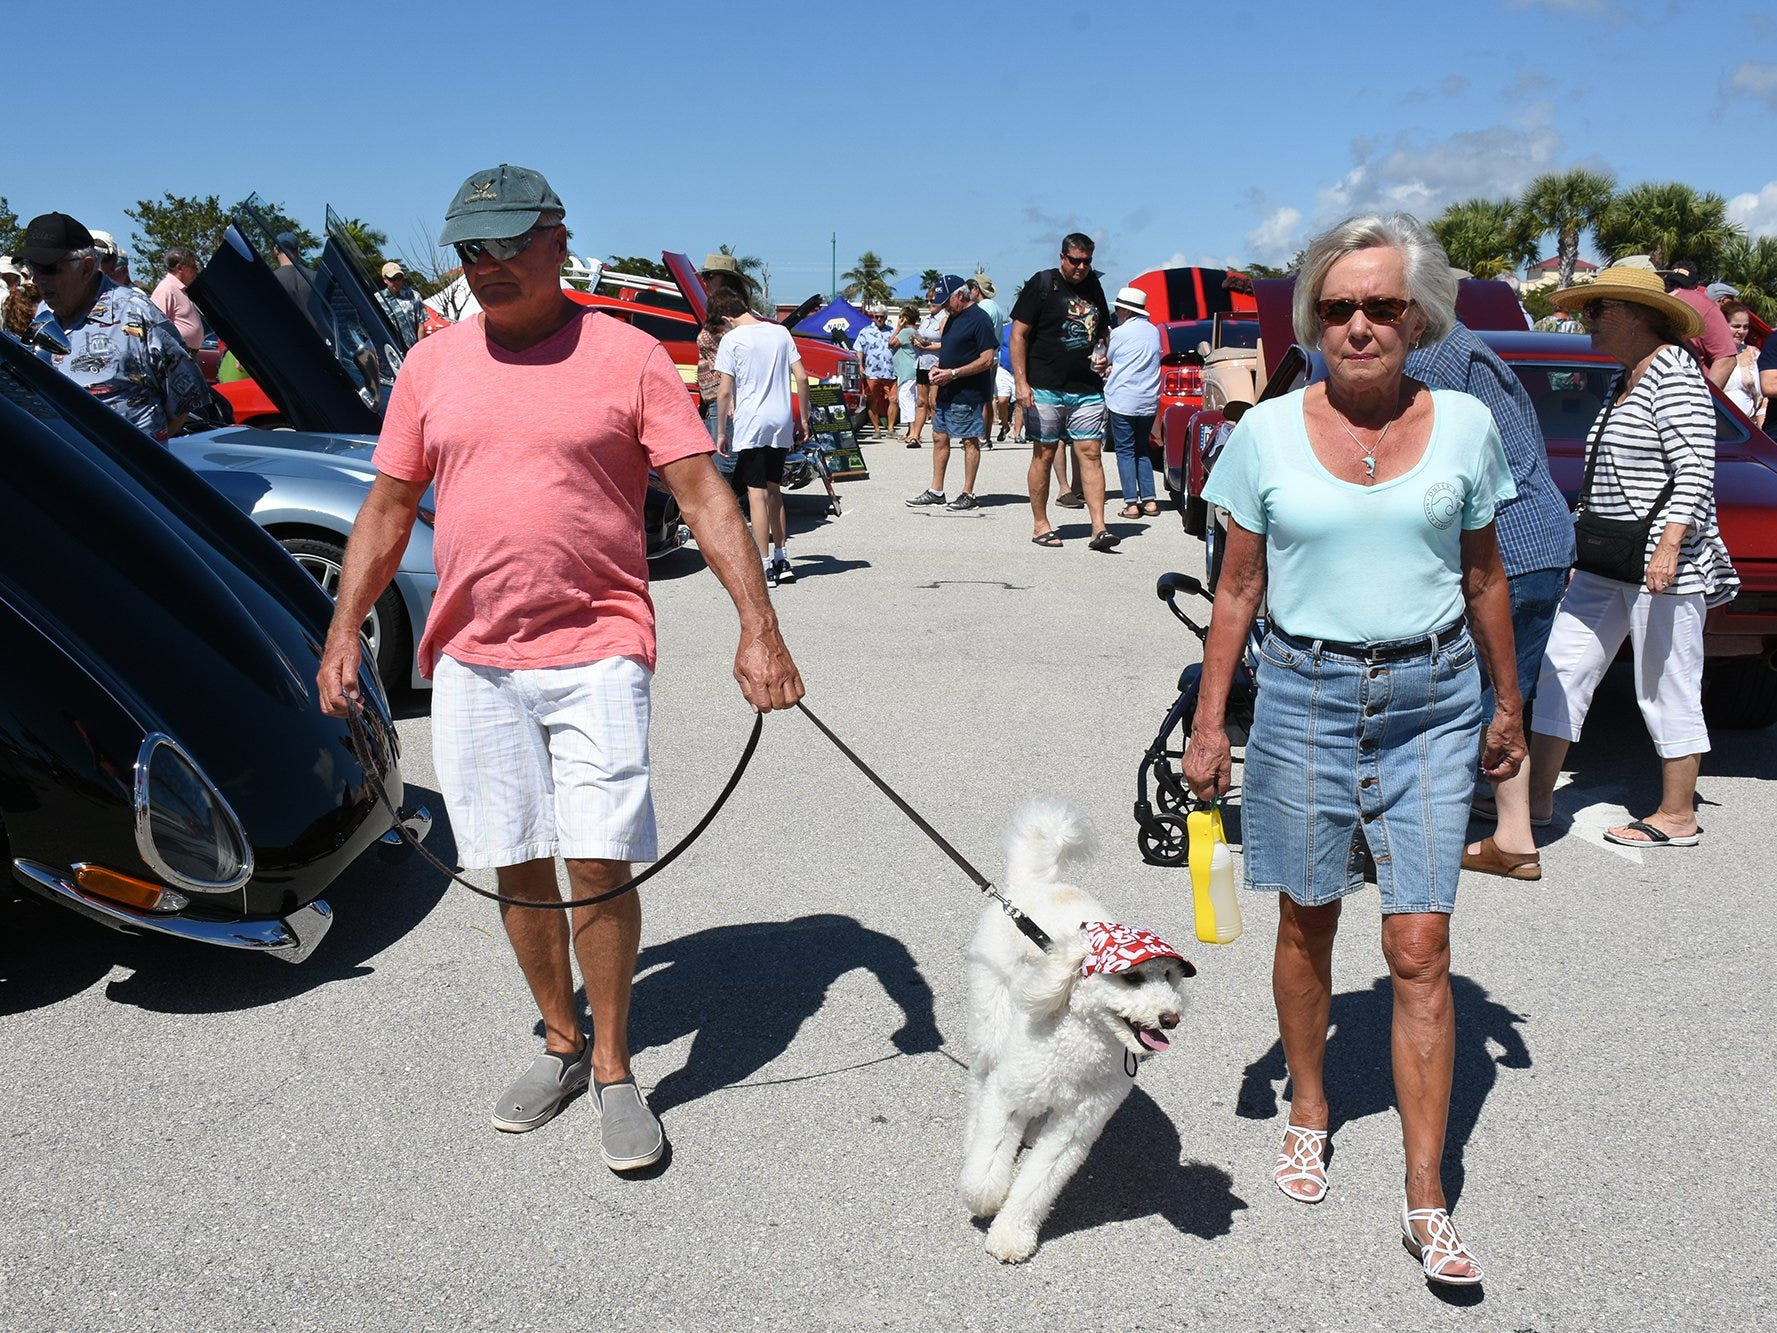 Dennis and Gloria Kin brought Wheeler, their golden doodle, to see the wheels. The annual Kiwanis car show brought 170 collectible cars and thousands of car enthusiasts to Veterans Community Park on Marco Island Sunday.